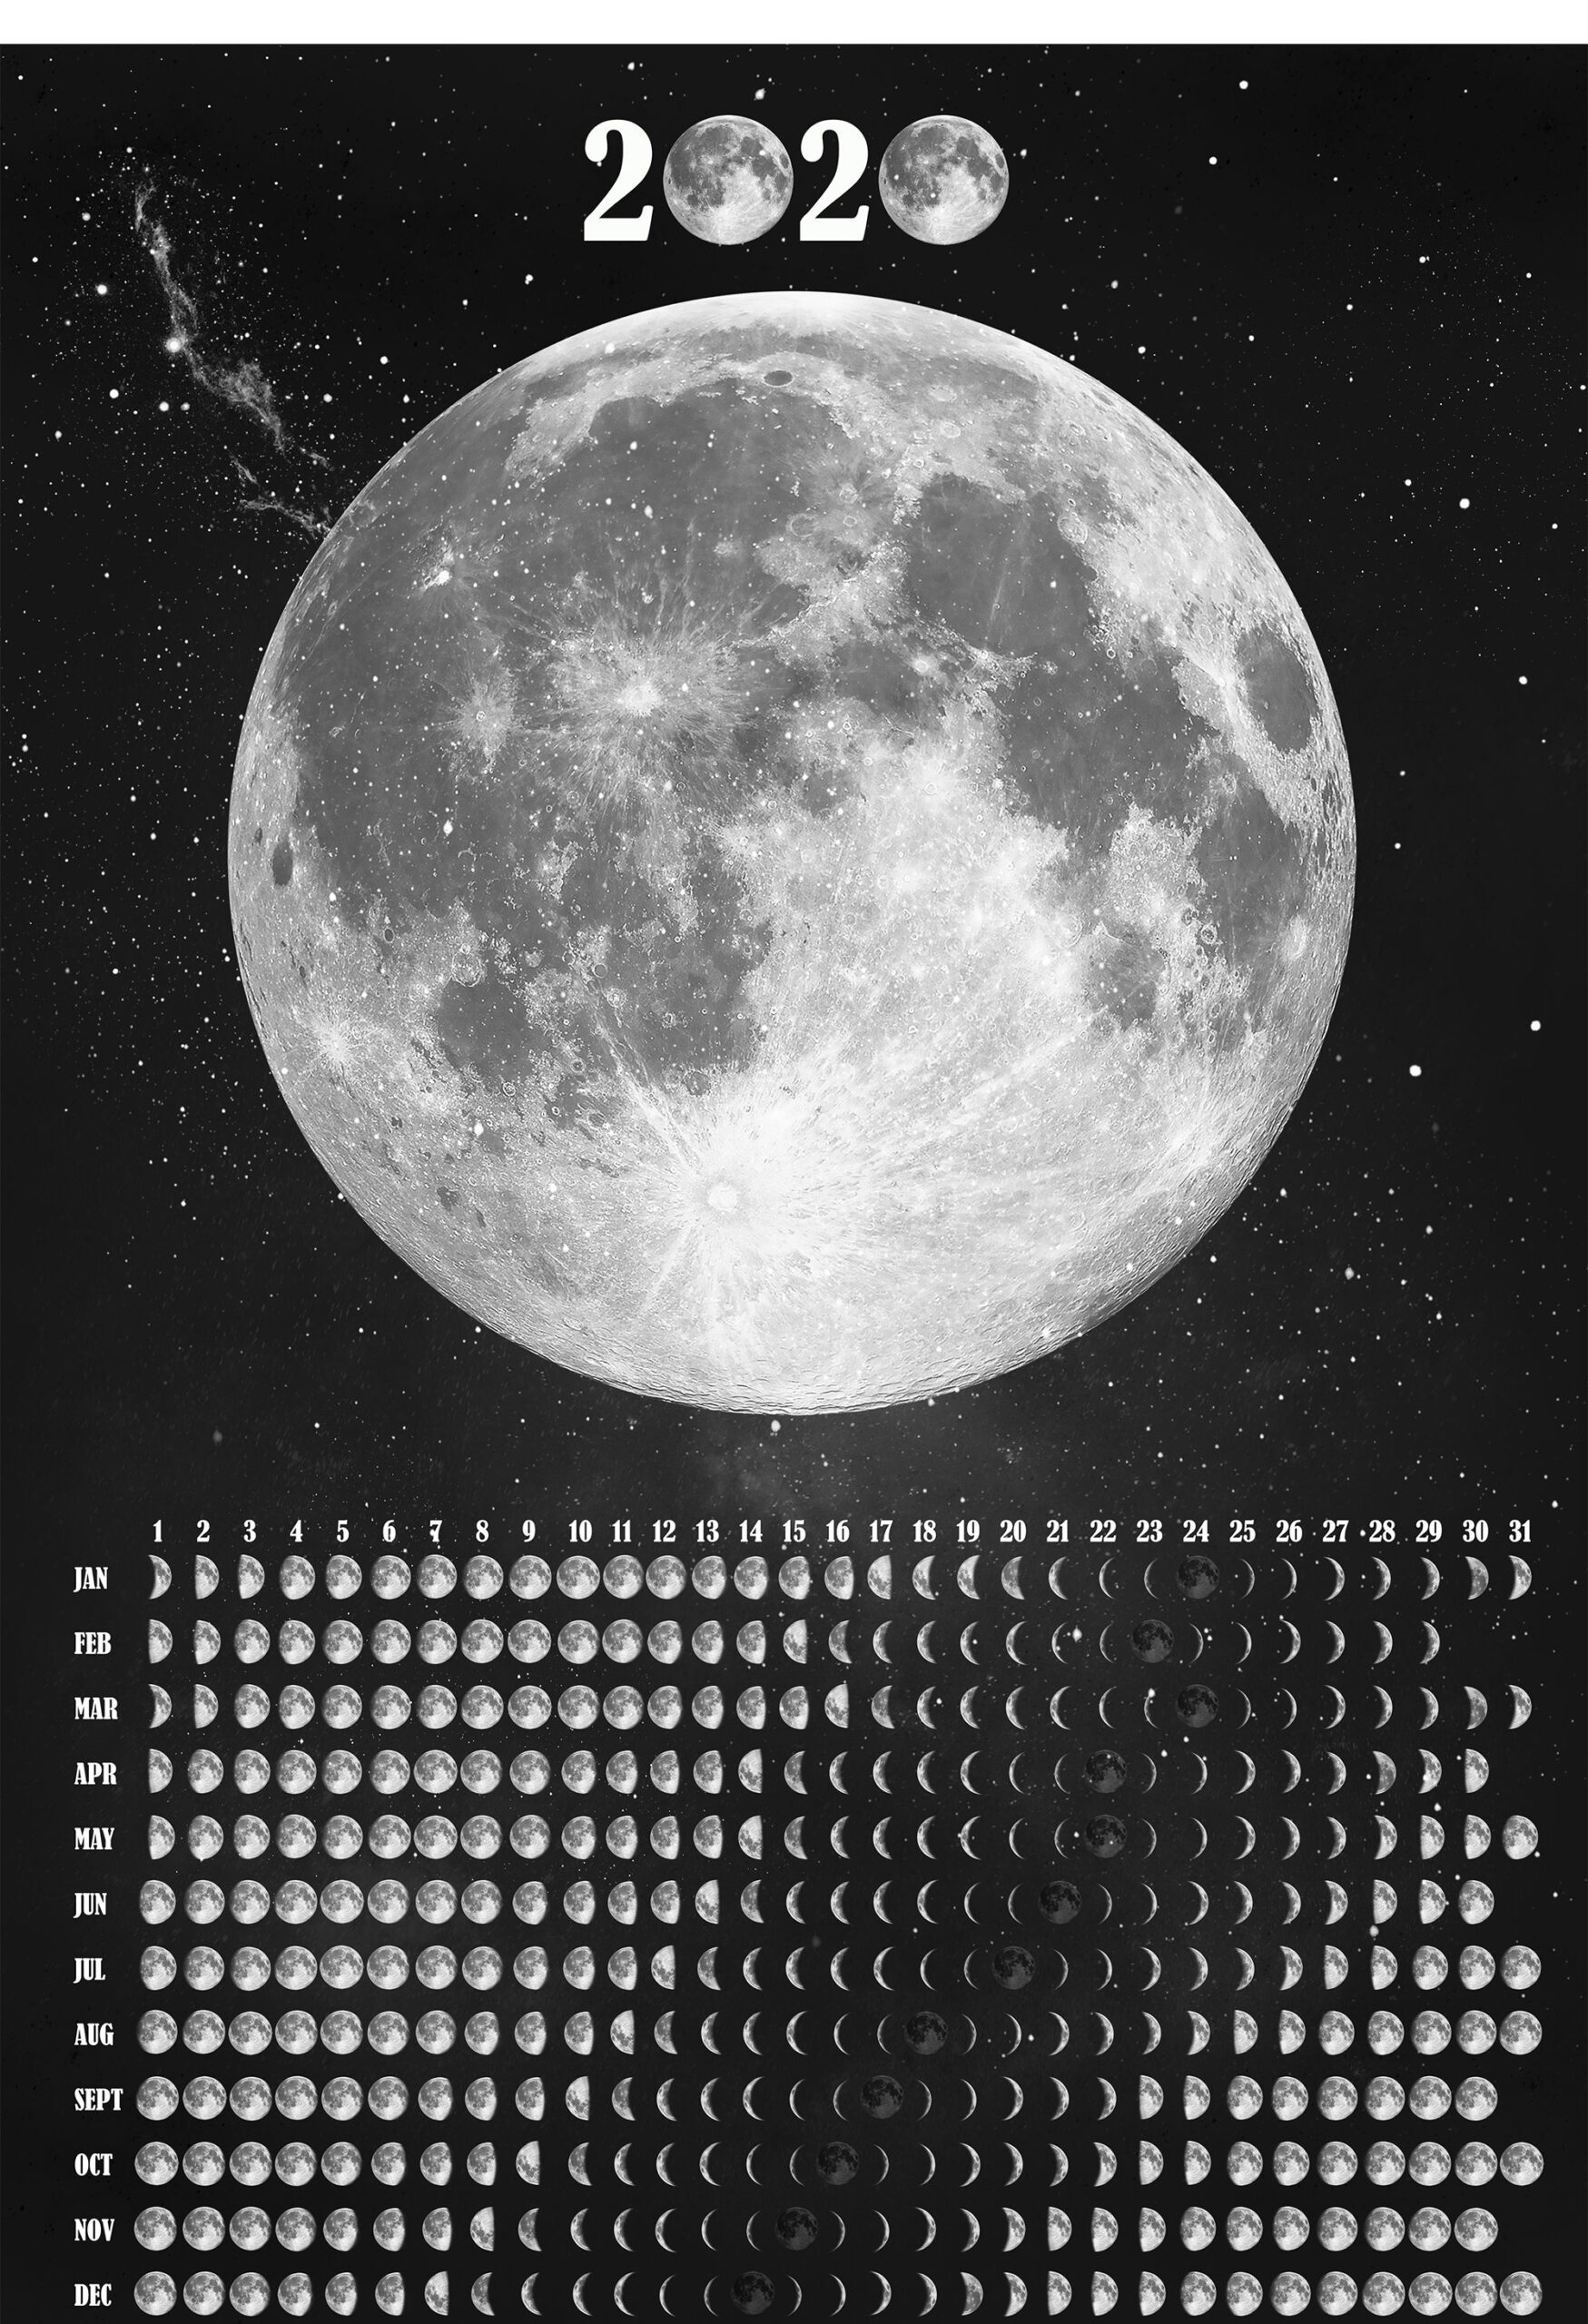 Moon Phases Wall Calendar 2021 Lunar Calendar Moon Phase within Printable Yearly Full Moon Calendar For 2021